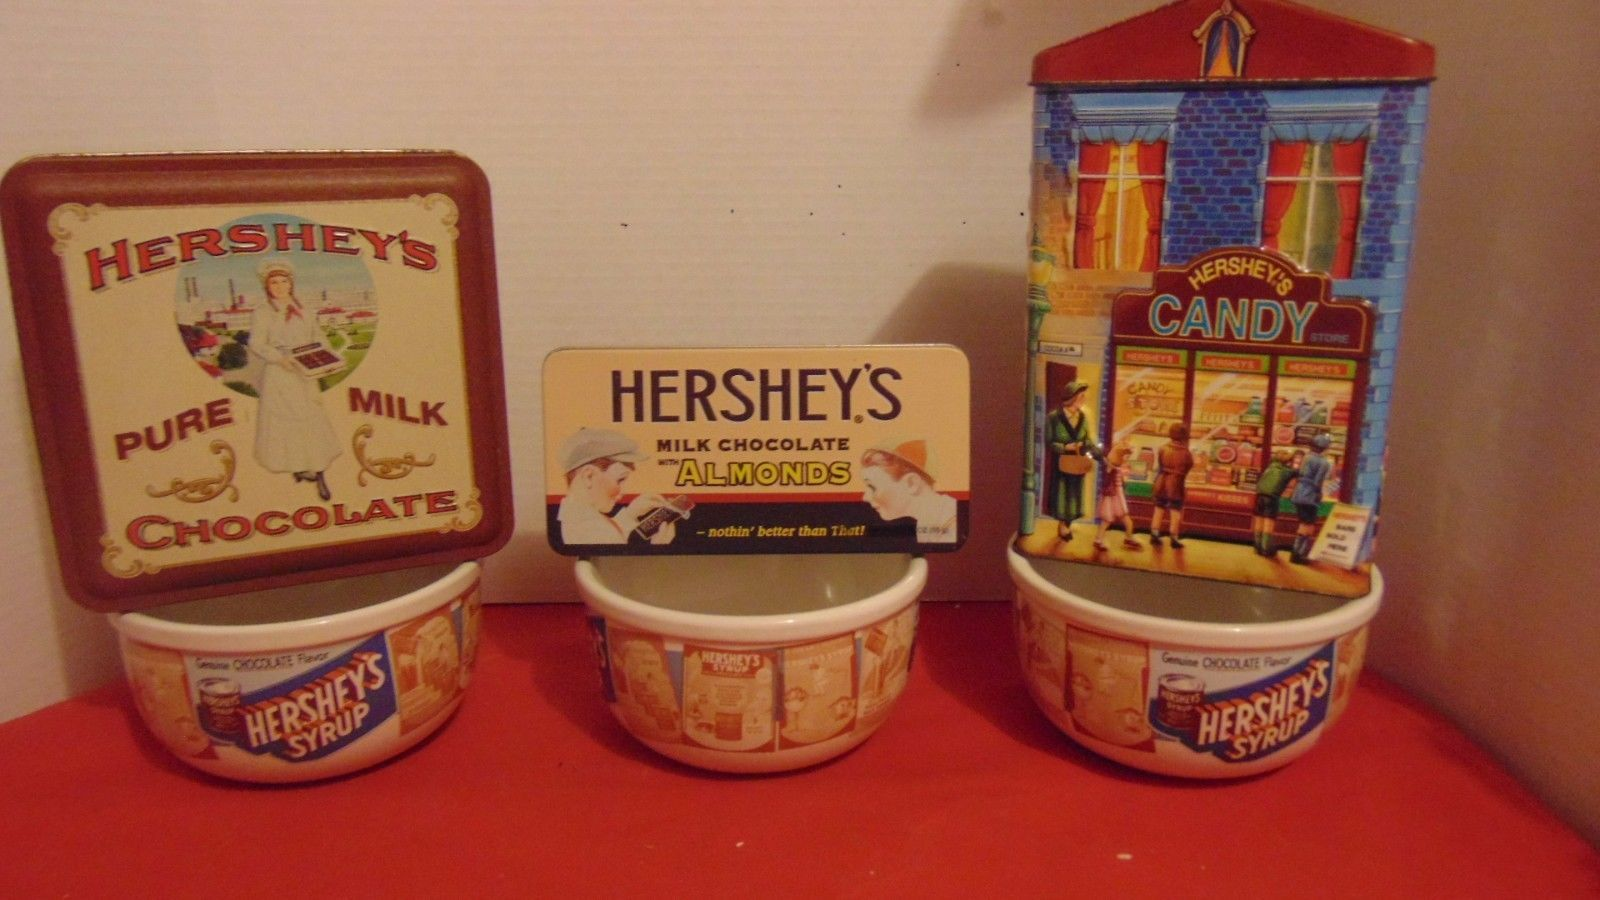 Hersheys Tins-Soup/Cereal Bowls-3 Each-Houston Harvest Gift Candy Store-Candy